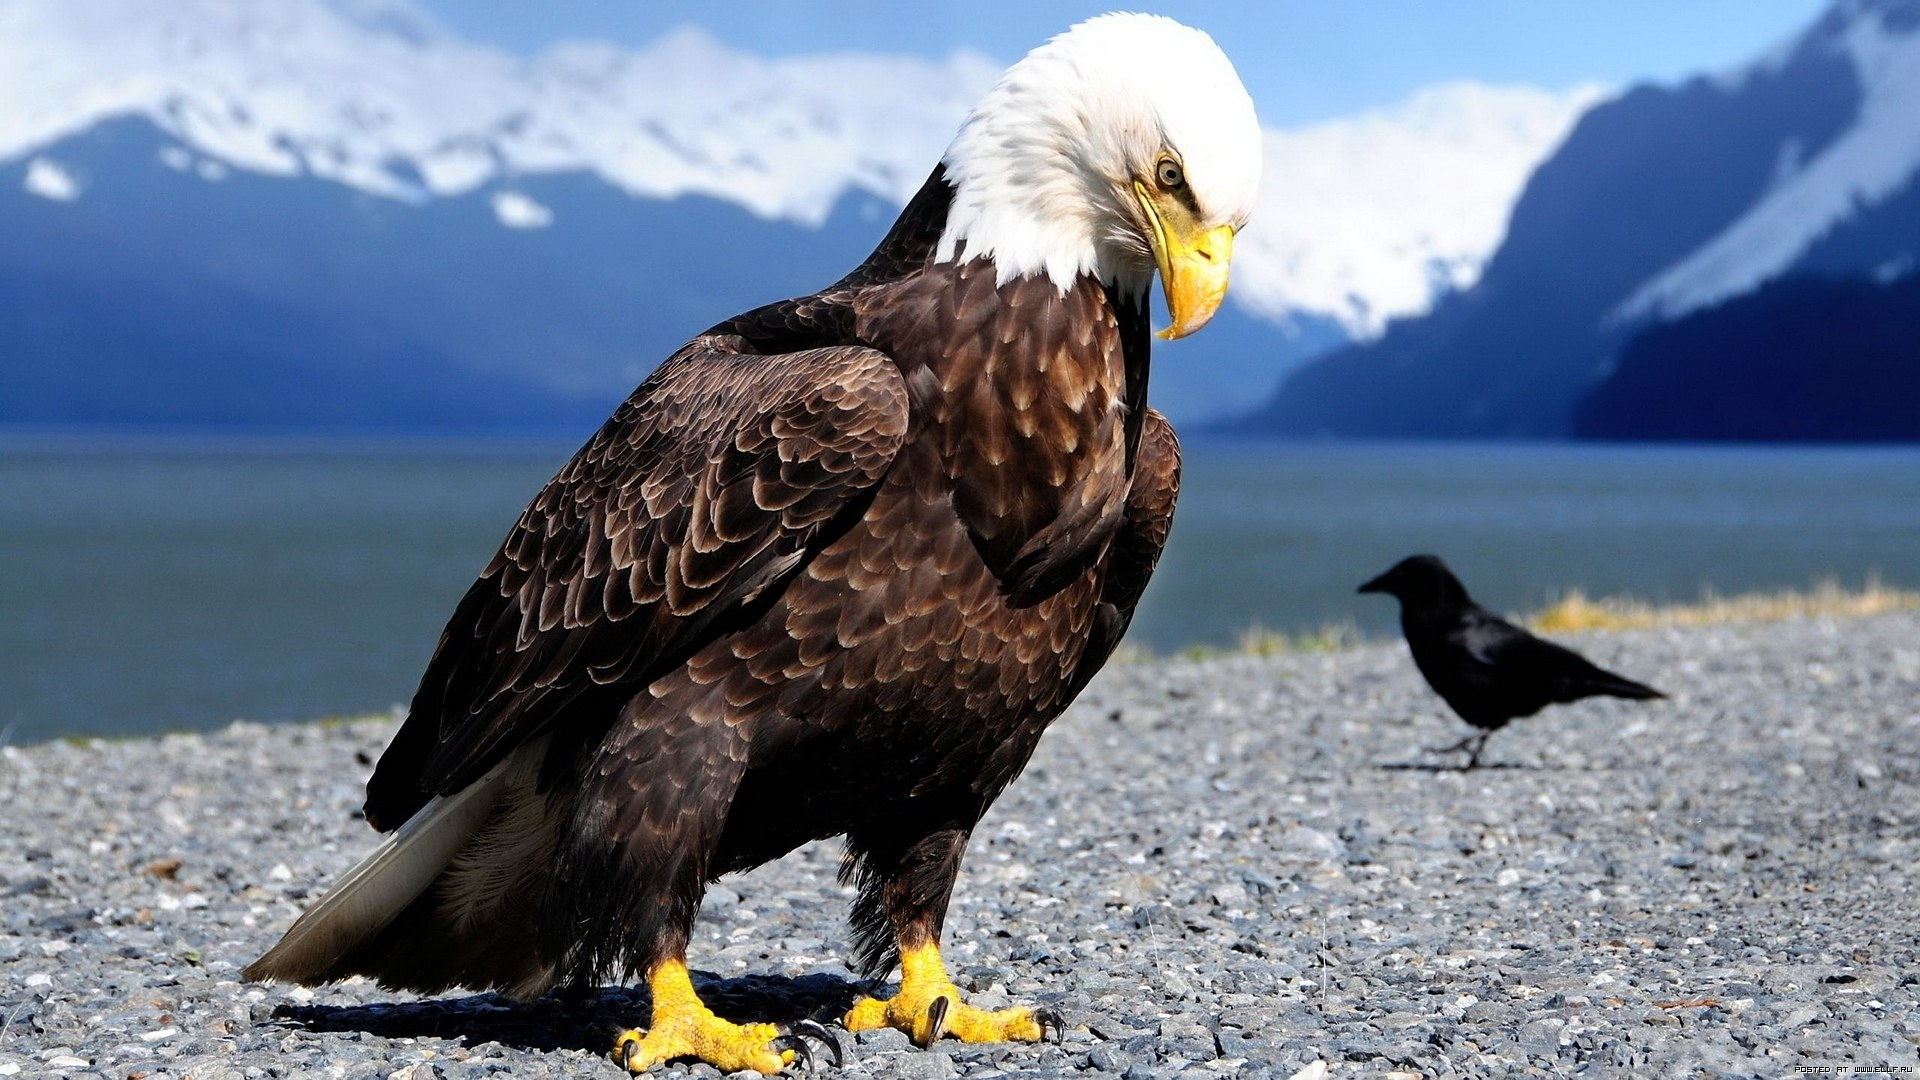 50270 download wallpaper Animals, Birds, Eagles screensavers and pictures for free